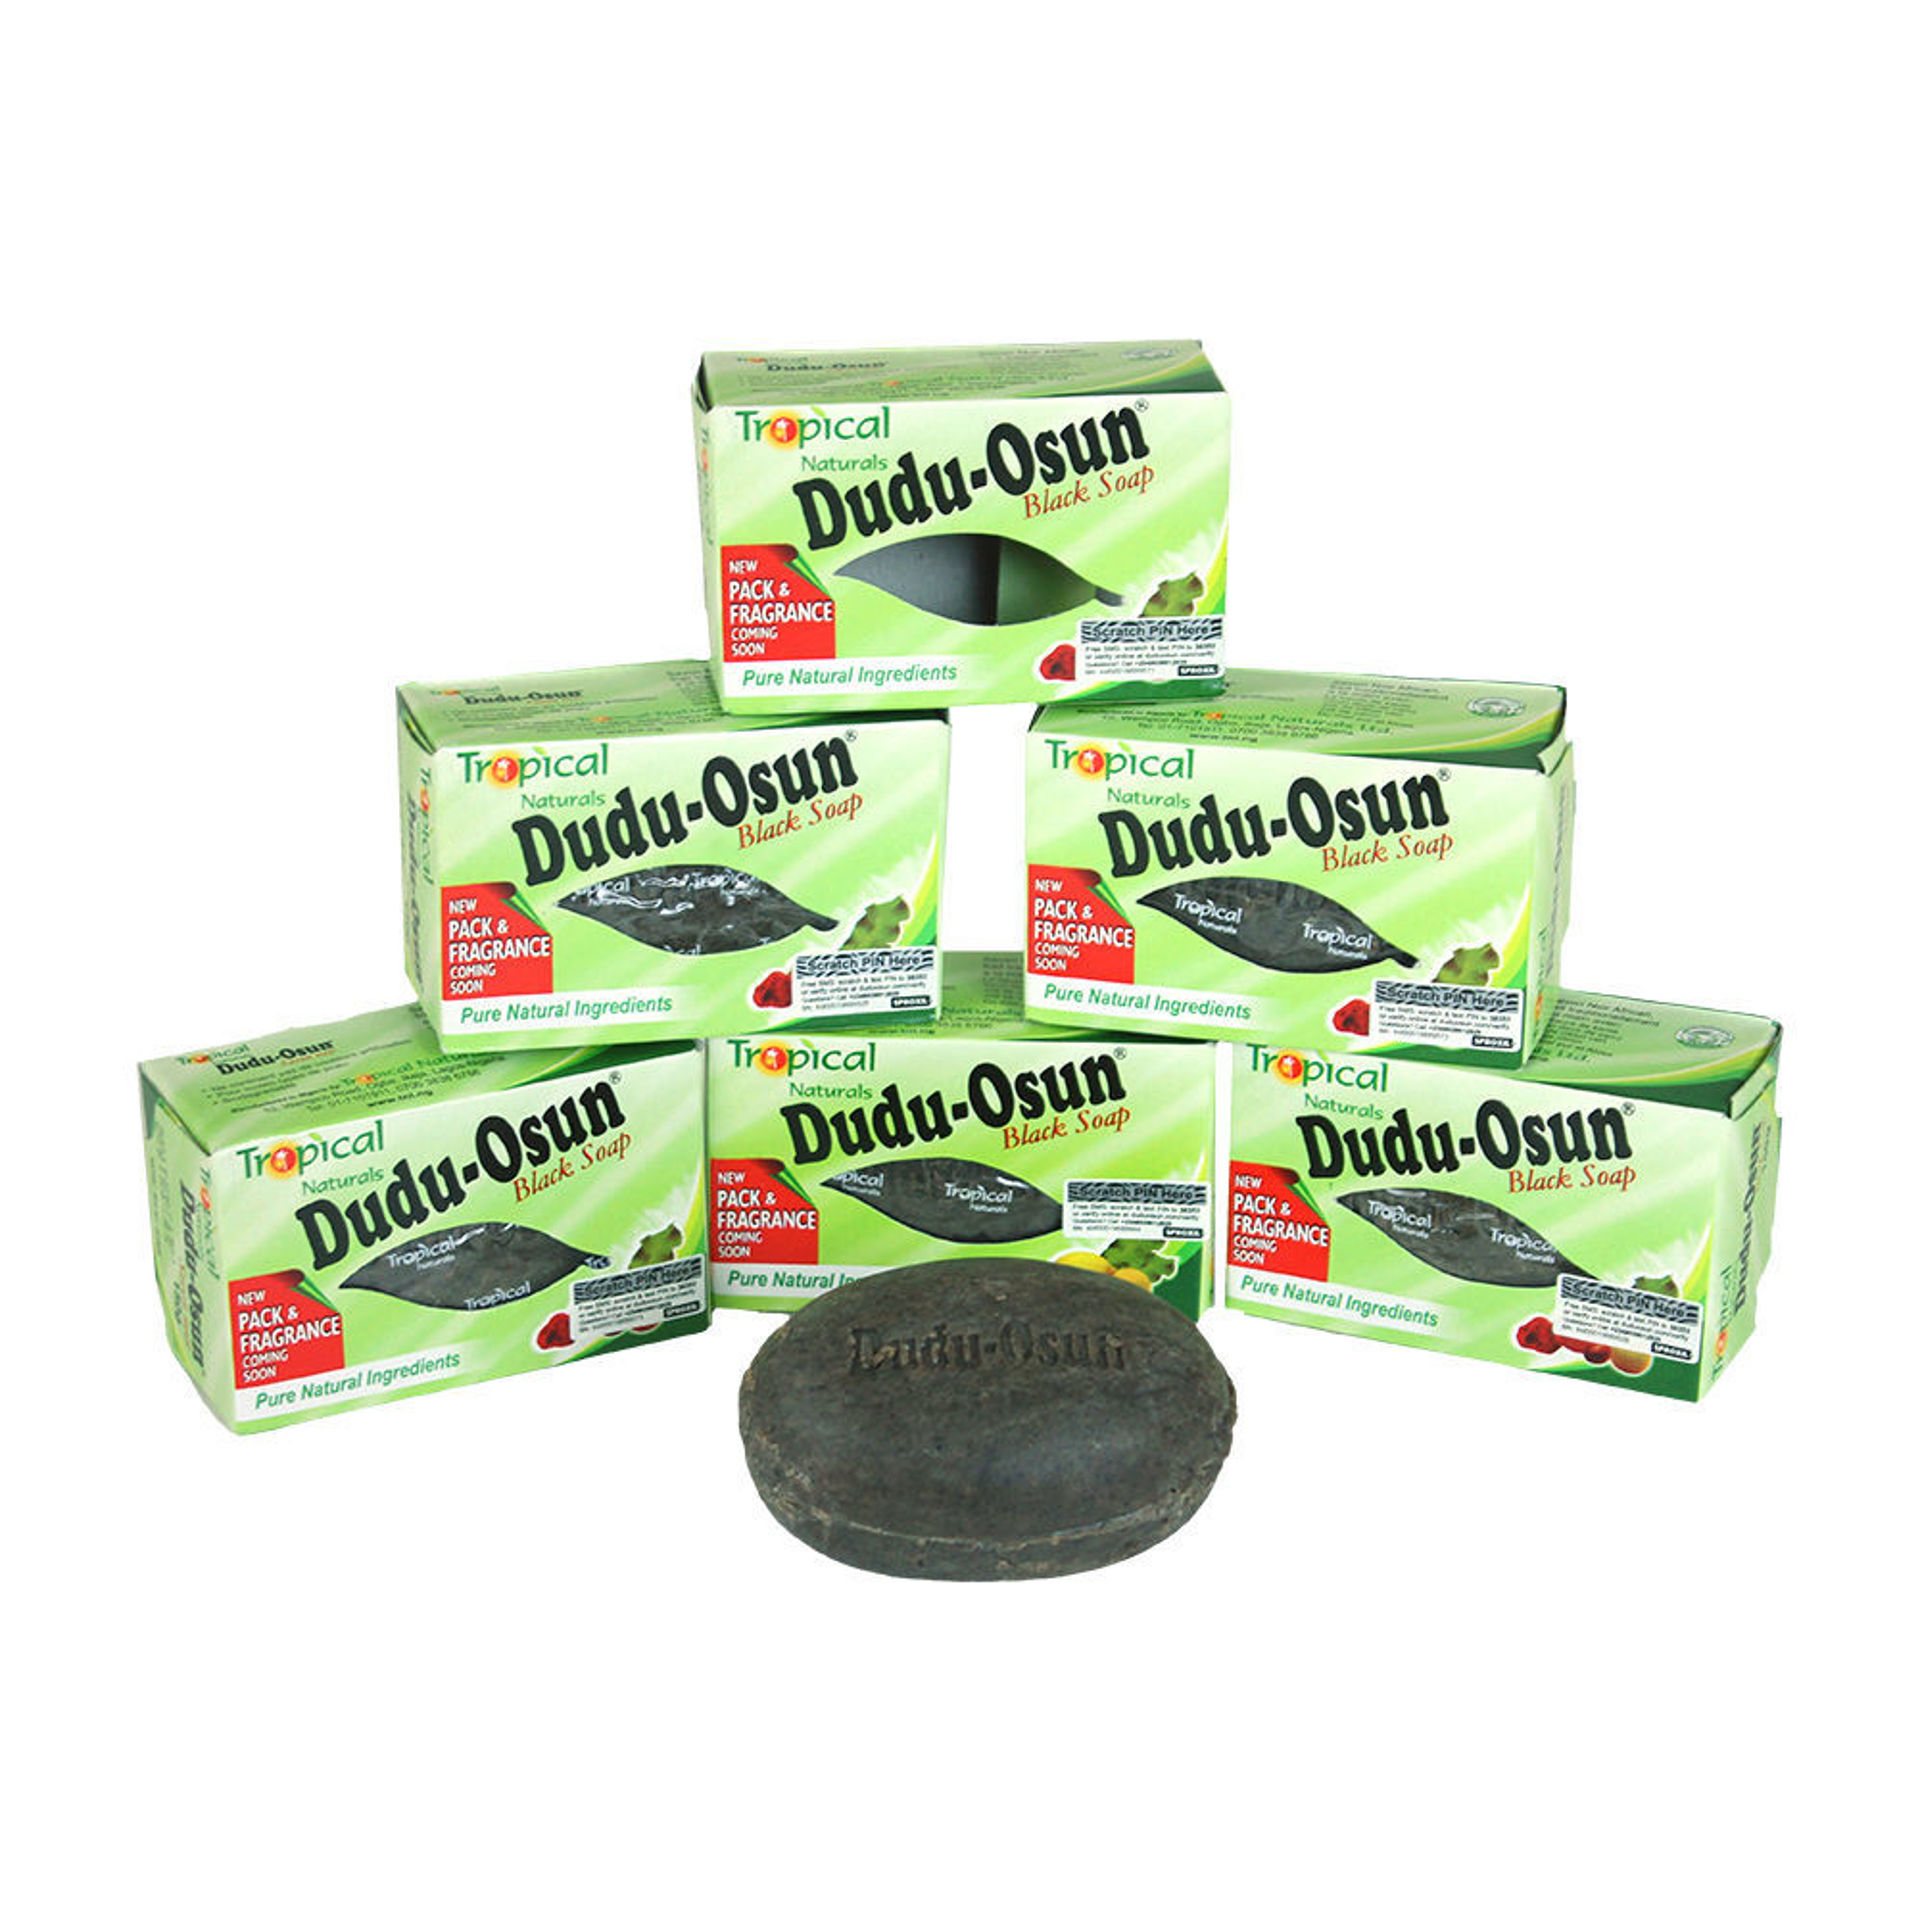 Picture of CLASSIC Dudu-Osun Black Soap - Pack Of 6